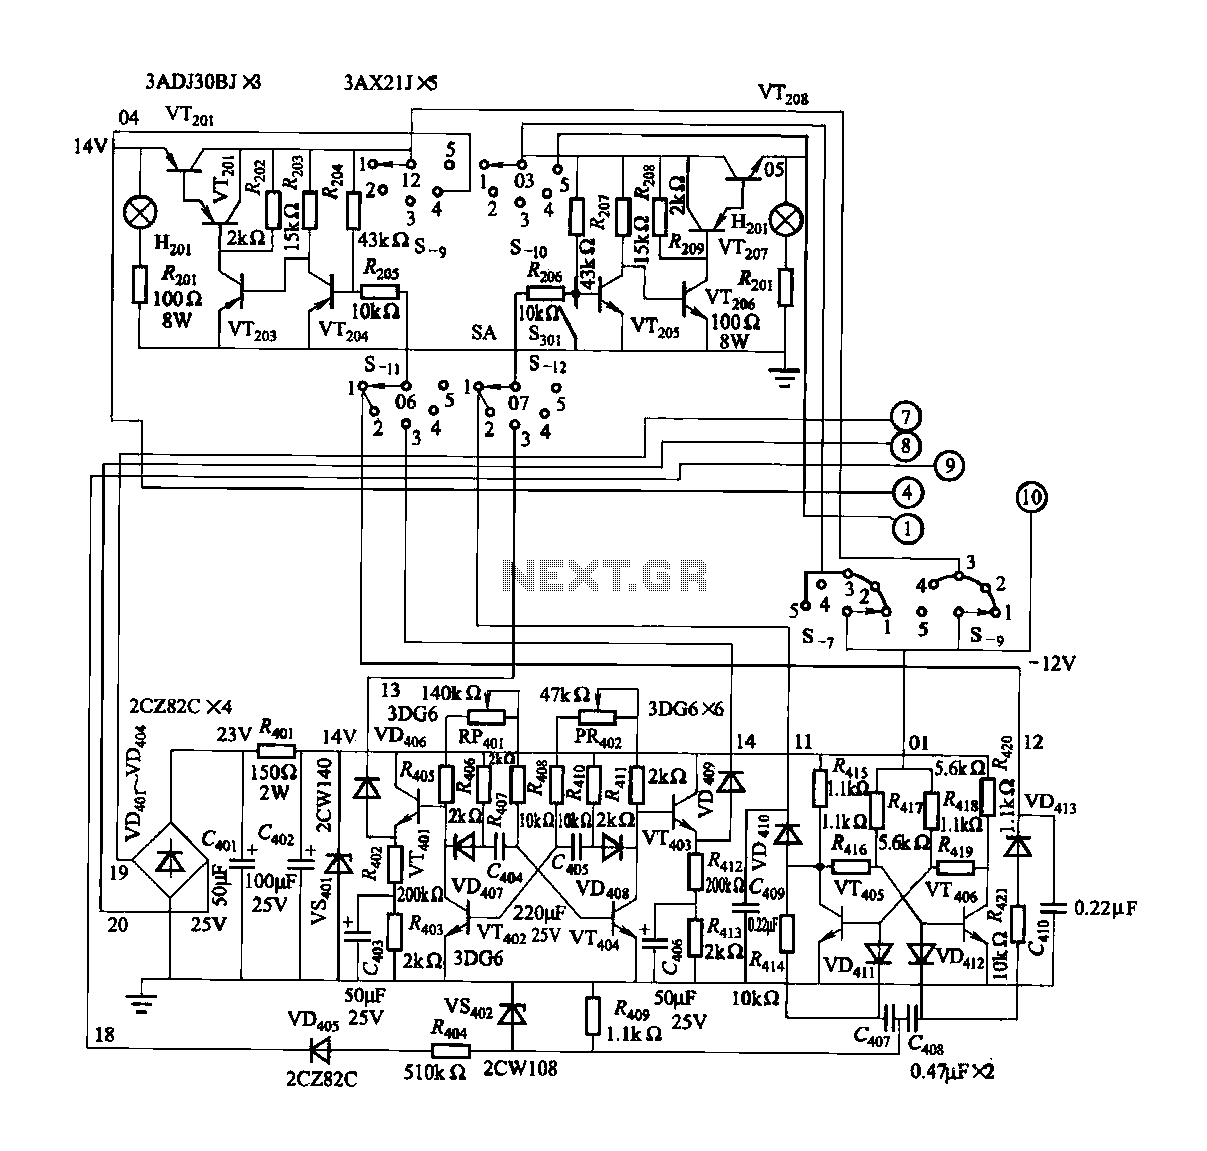 Automation Circuit Page 2 Electronic Circuits 335 Nextgr Fgdf 3 Three Phase Low Temperature Iron Plating Power Commutation Control Switch And